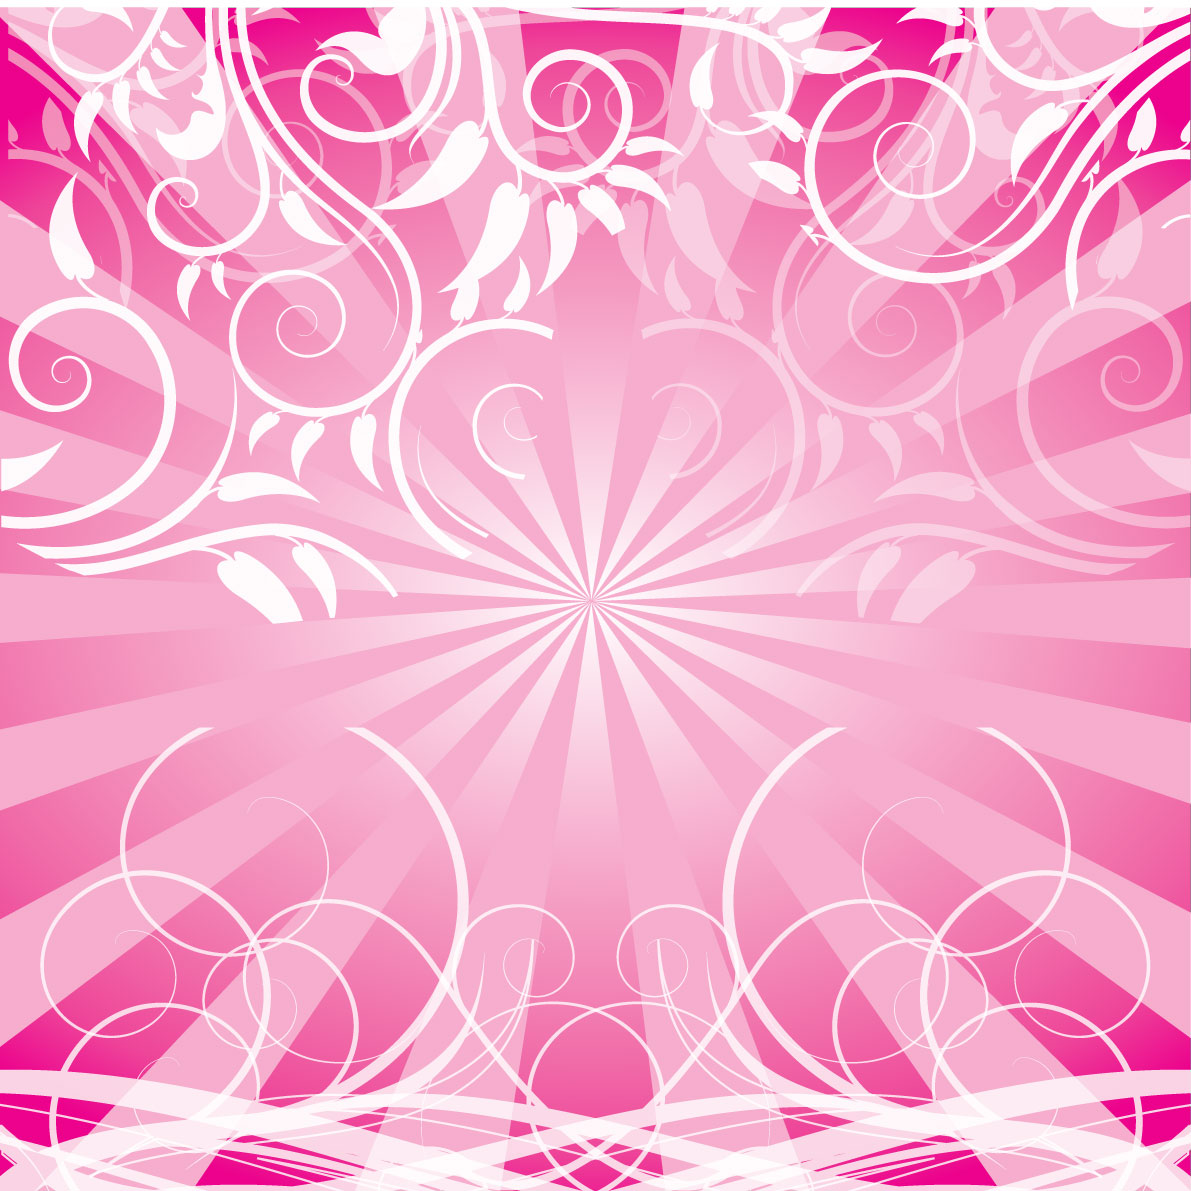 pink background designs images pictures becuo